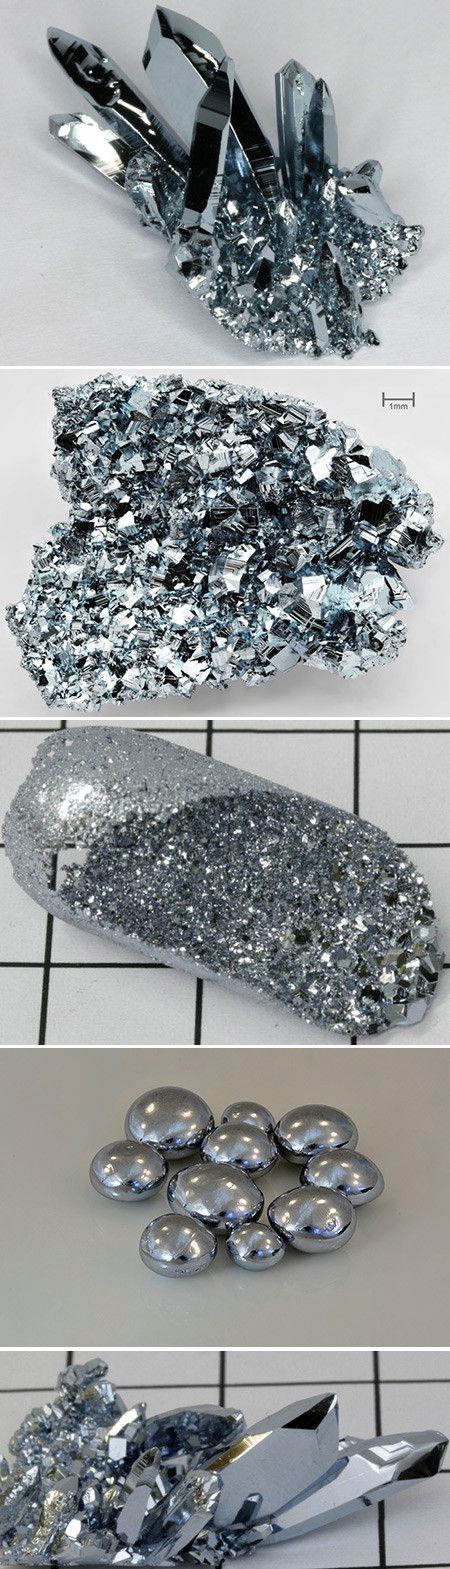 Osmium is both the densest and the rarest element that you can dig out of the Earth. It's so hard that it's used in places with constant pressure and wear, like the tips of fountain pens. One single cubic inch of this stuff weighs nearly a pound, and were you to somehow get a cubic foot of it, it would weigh over 1,400 pounds. Good luck with that, though: last year, the entire U.S. osmium production was only 165 pounds.